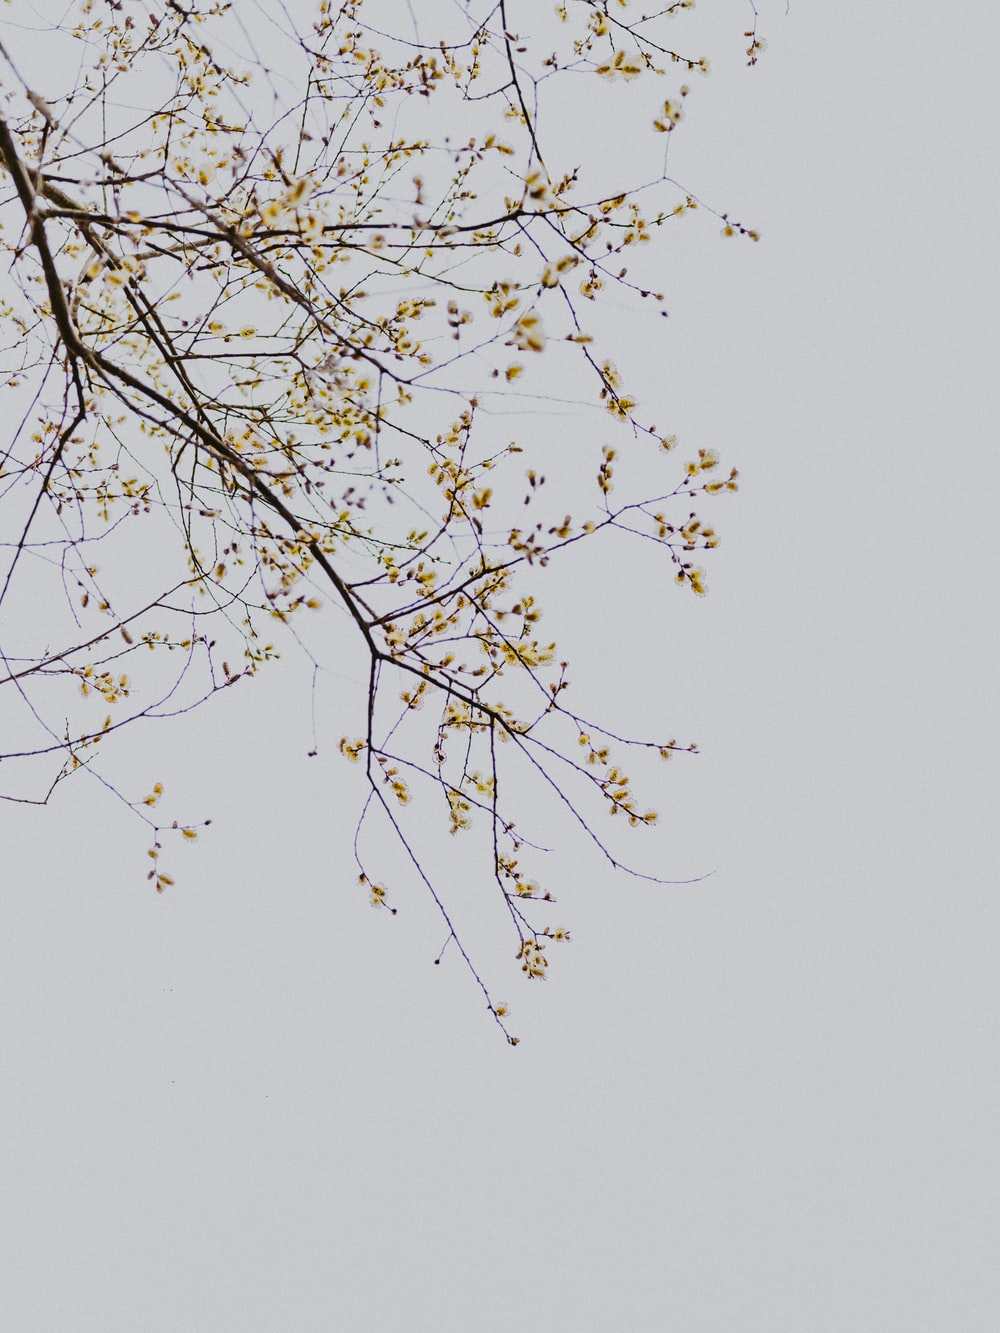 low-angle photography of yellow-leafed tree